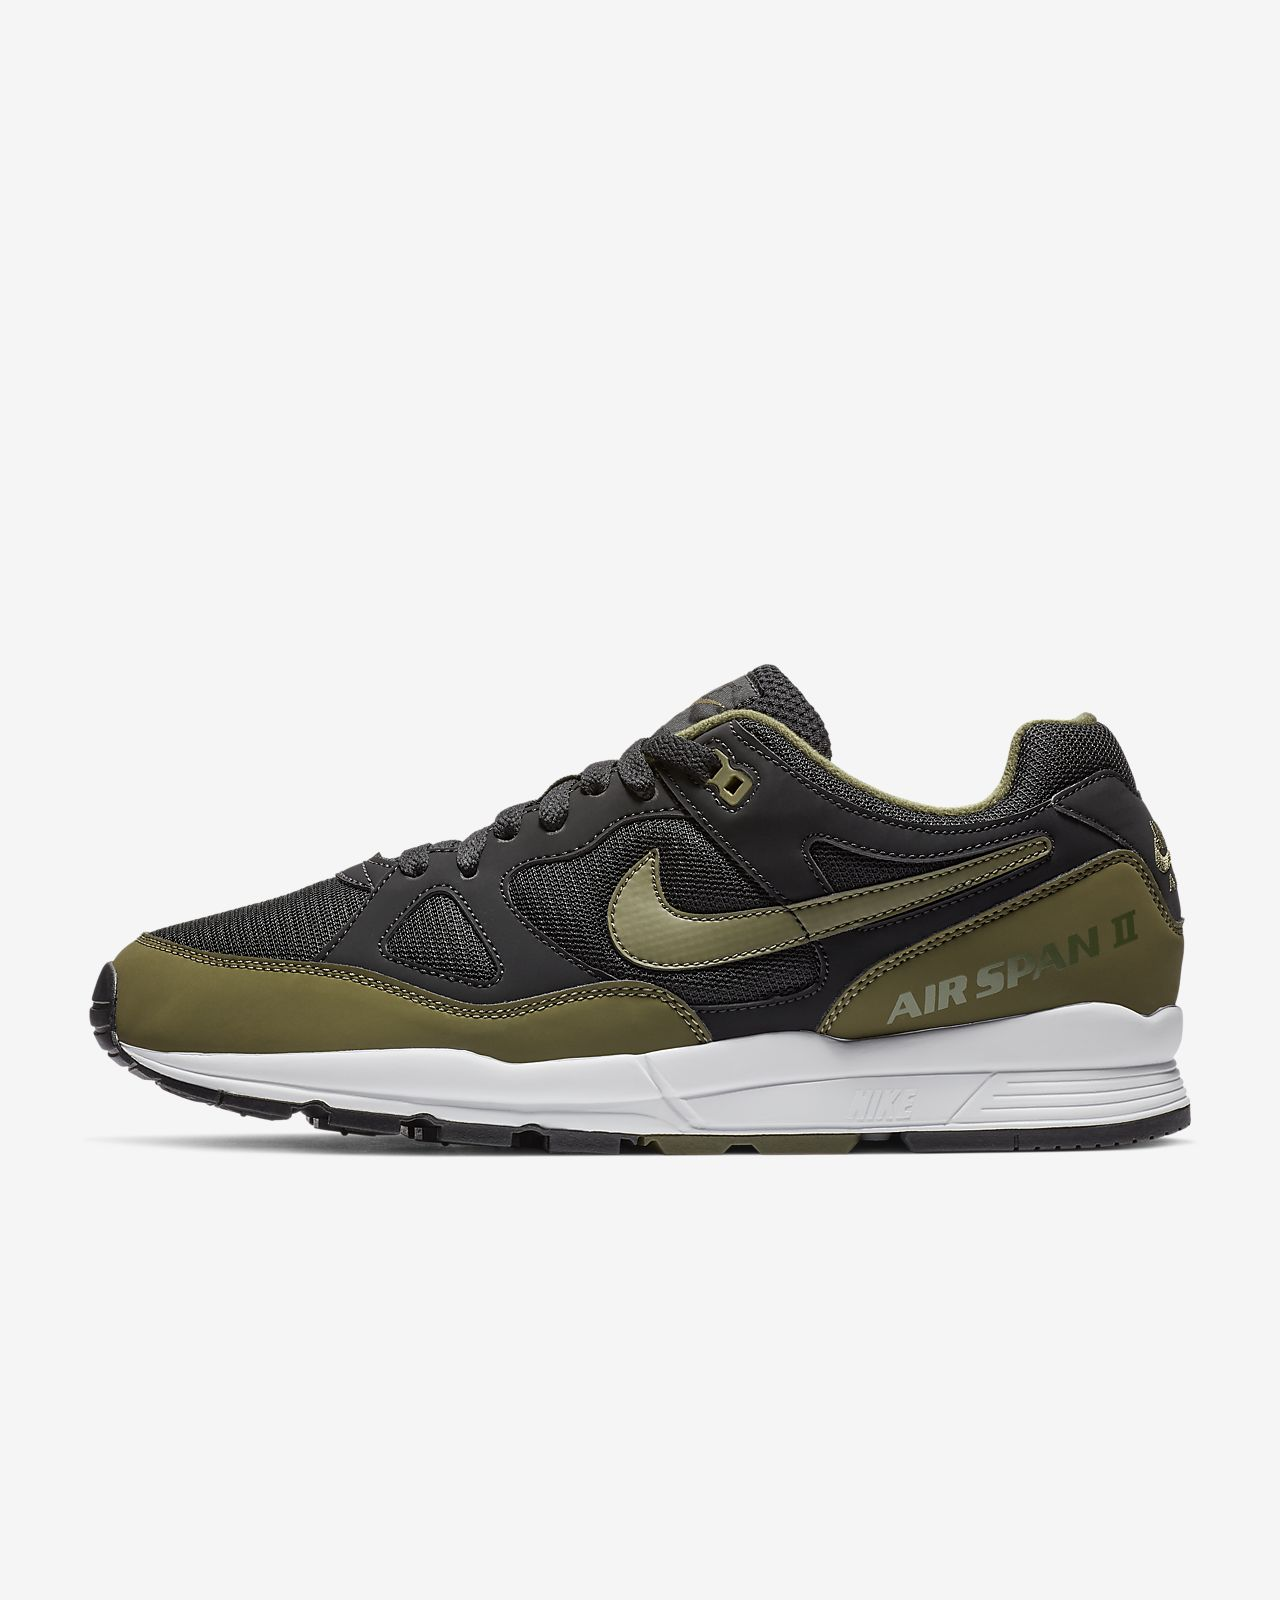 lowest price ffb31 32d28 Low Resolution Nike Air Span II Men s Shoe Nike Air Span II Men s Shoe